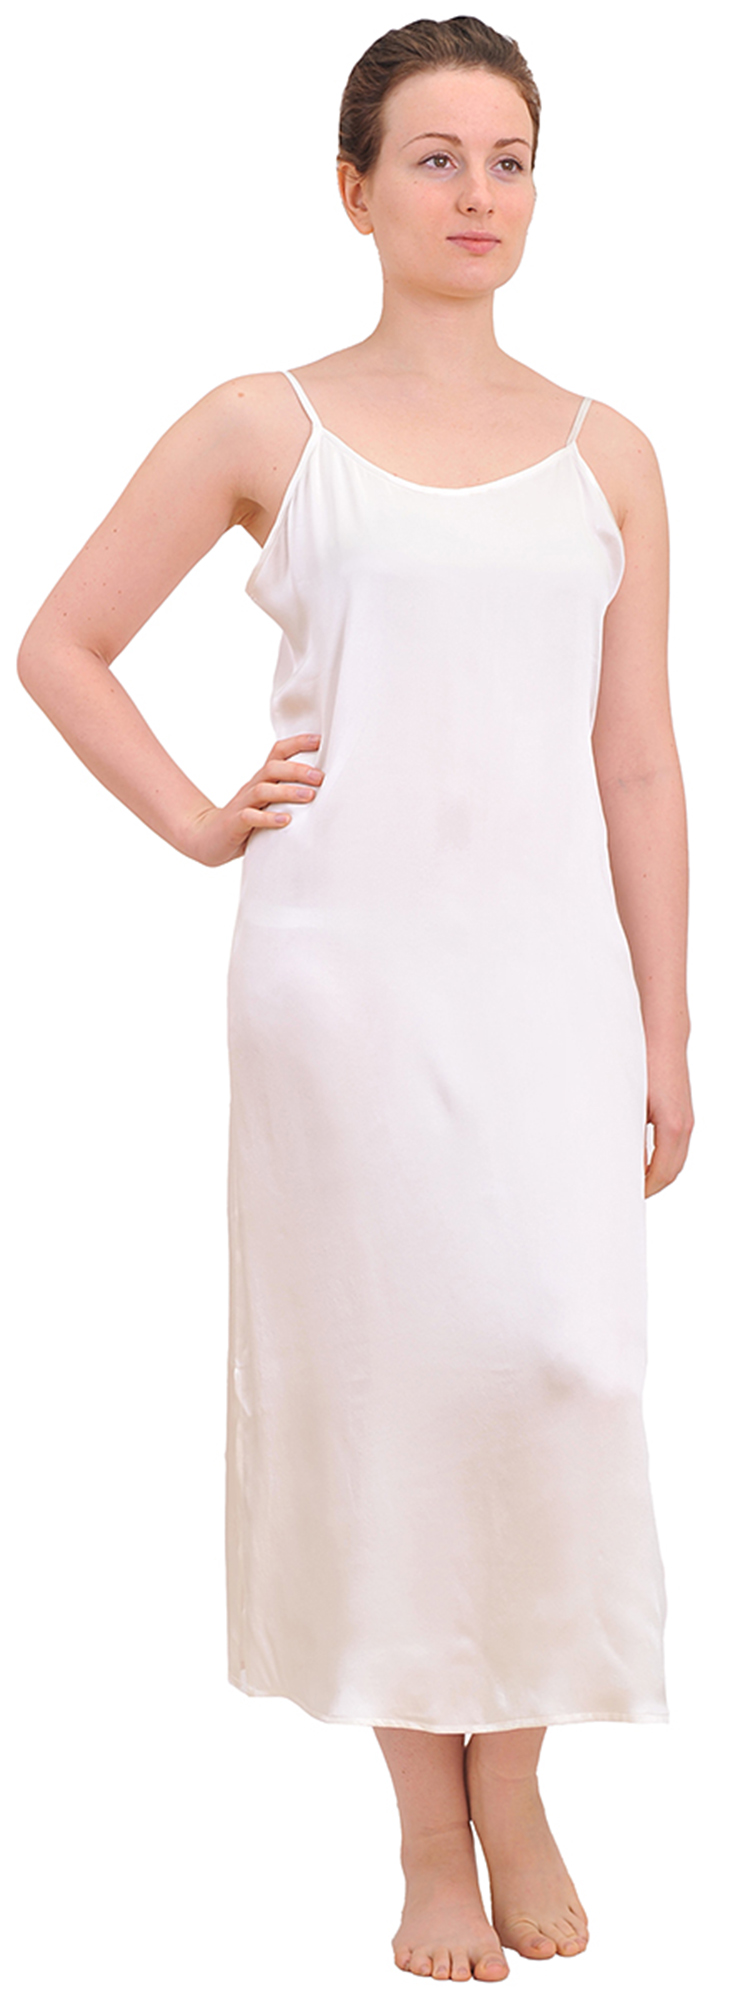 MARYCRAFTS WOMENS PURE SILK NIGHTIE NIGHT GOWN SLEEP DRESS ... - photo#19